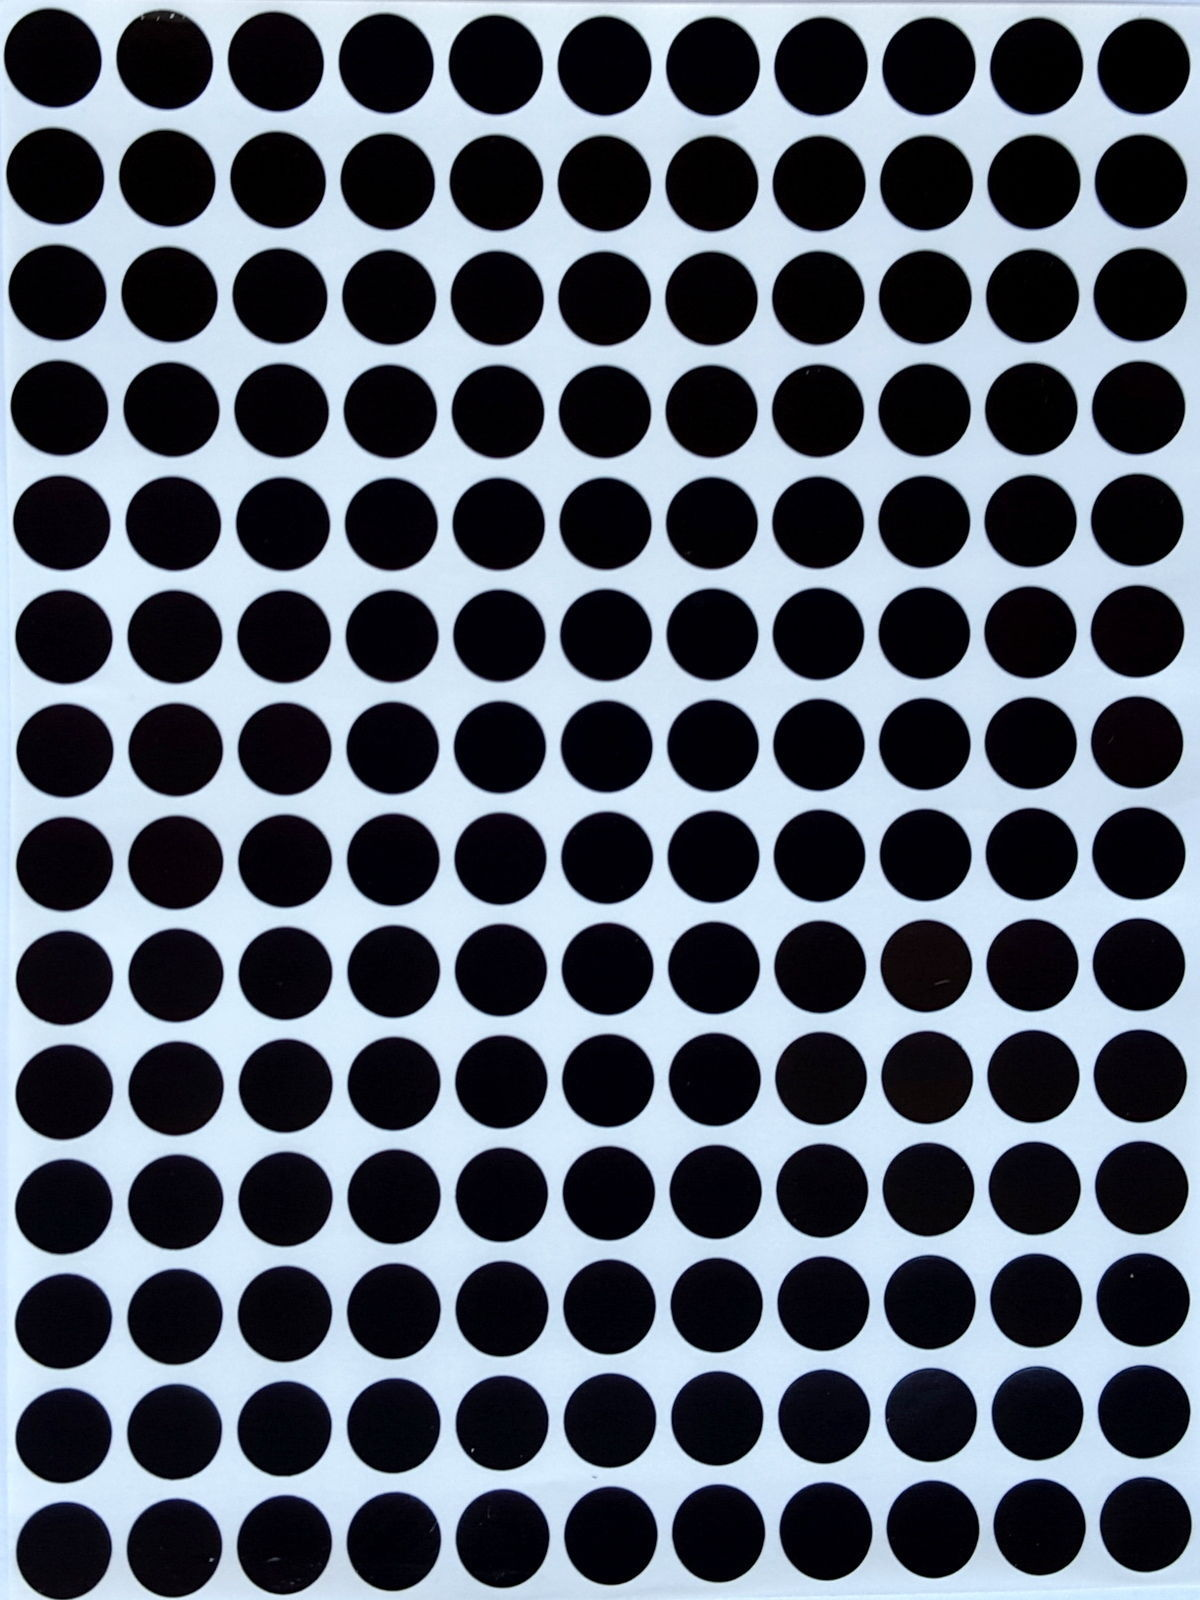 Small Dot Stickers 3/8 Inch Circle Labels 0.375 Size 10 mm 2100 Pack 15 Sheets